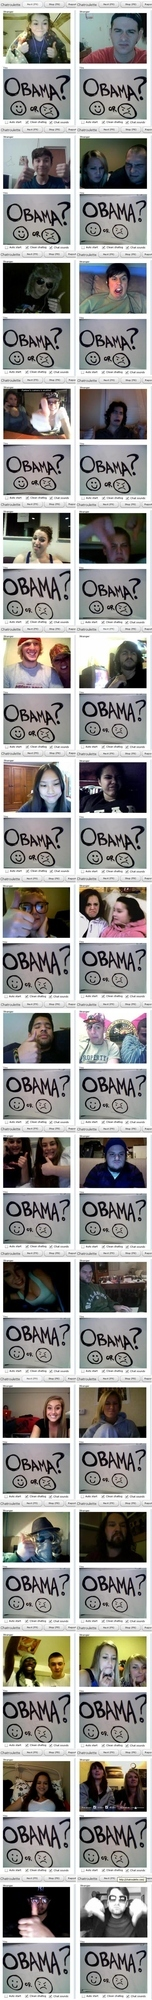 Chatroulette Rates Obama